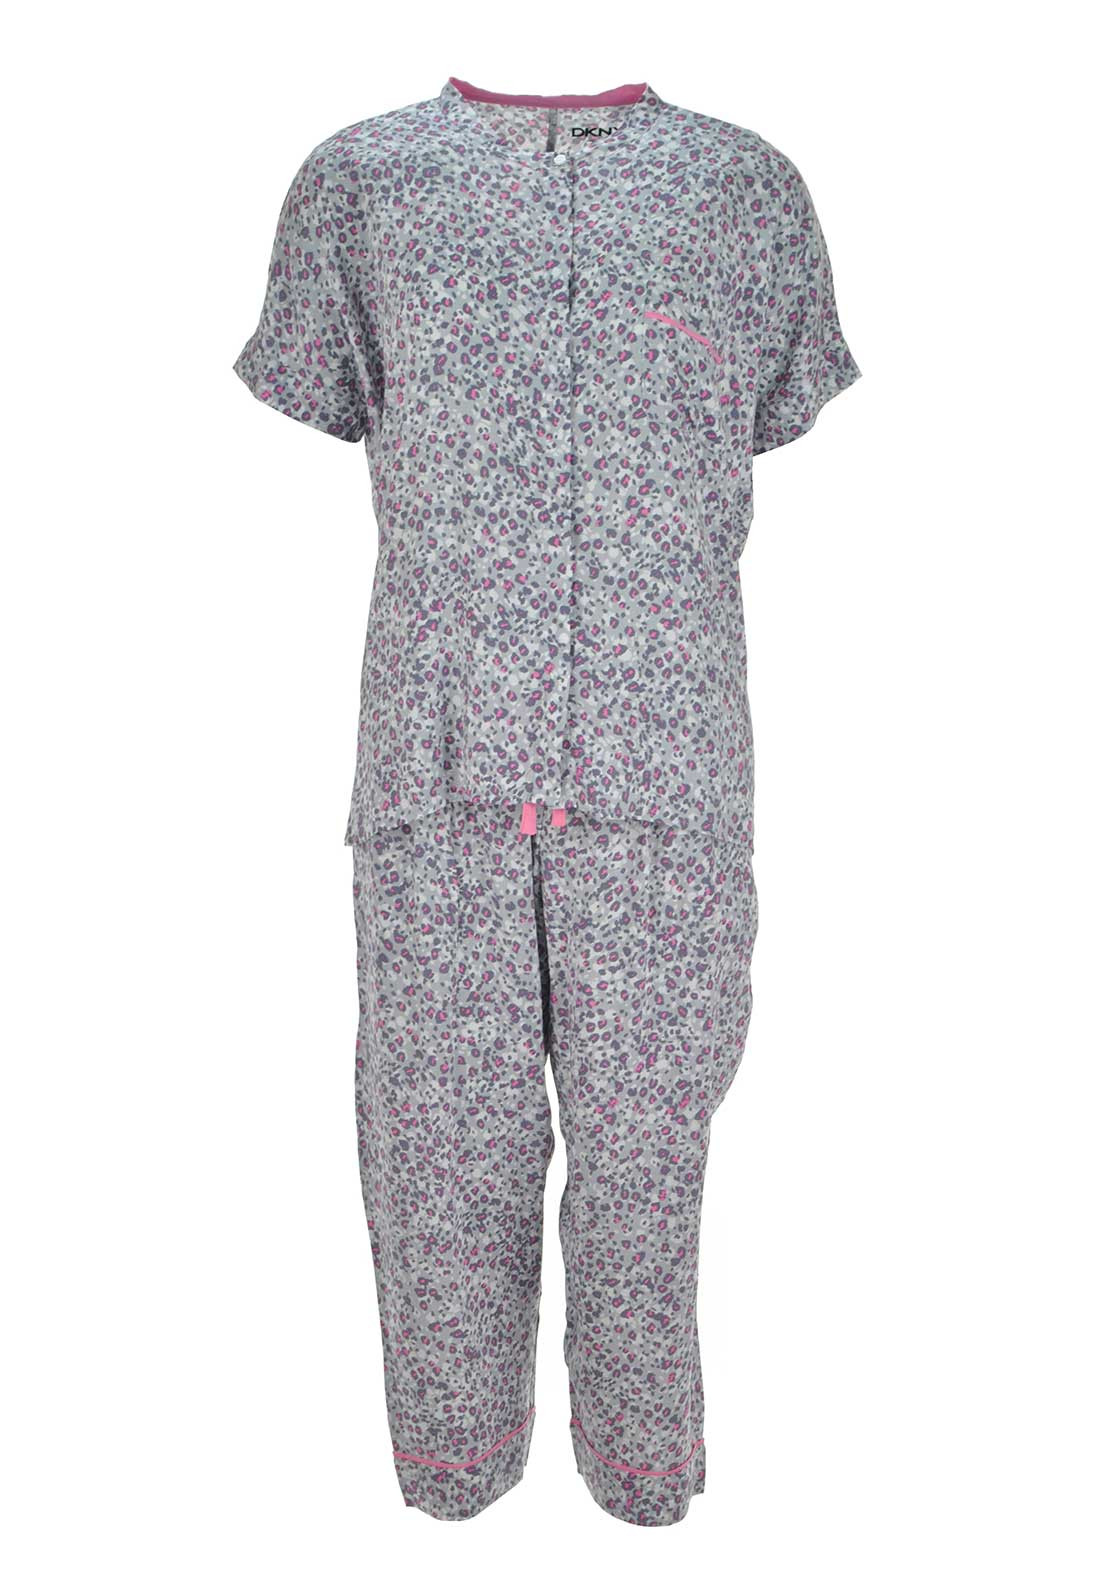 DKNY Womens Animal Print Pyjama Set, Grey Multi